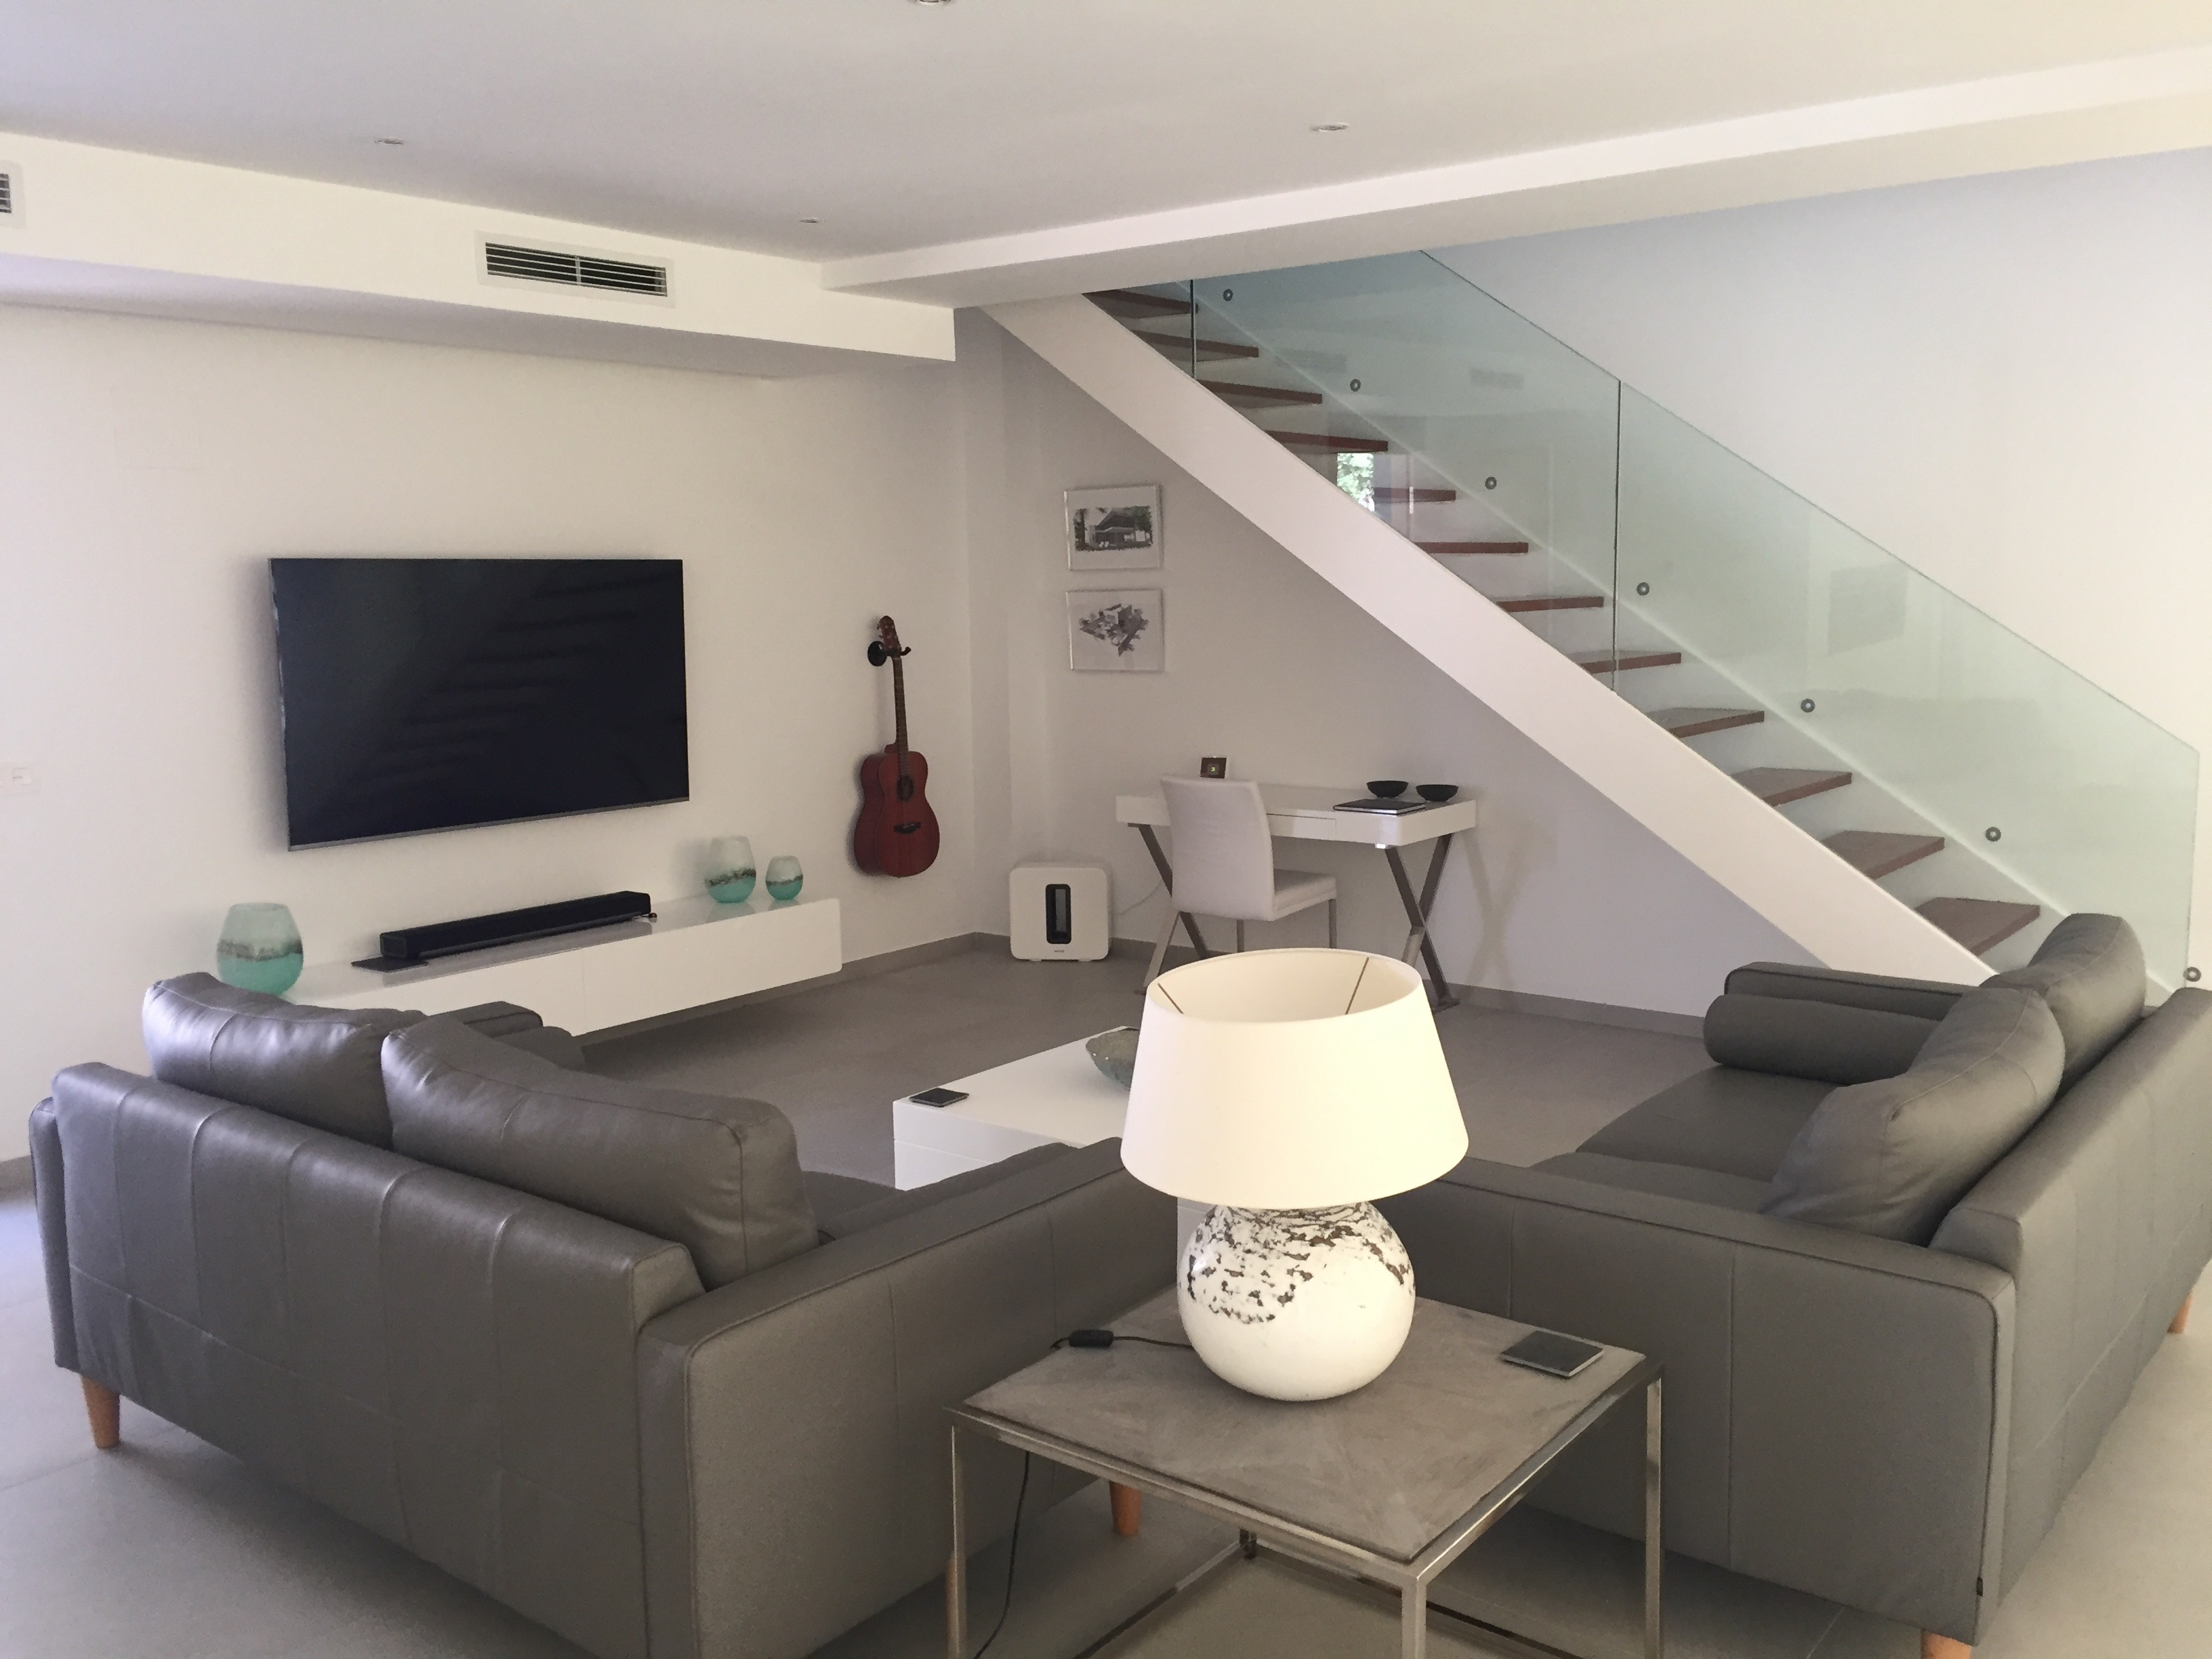 4 bedroom villa for sale in javea new spanish homes for Living room 5x3